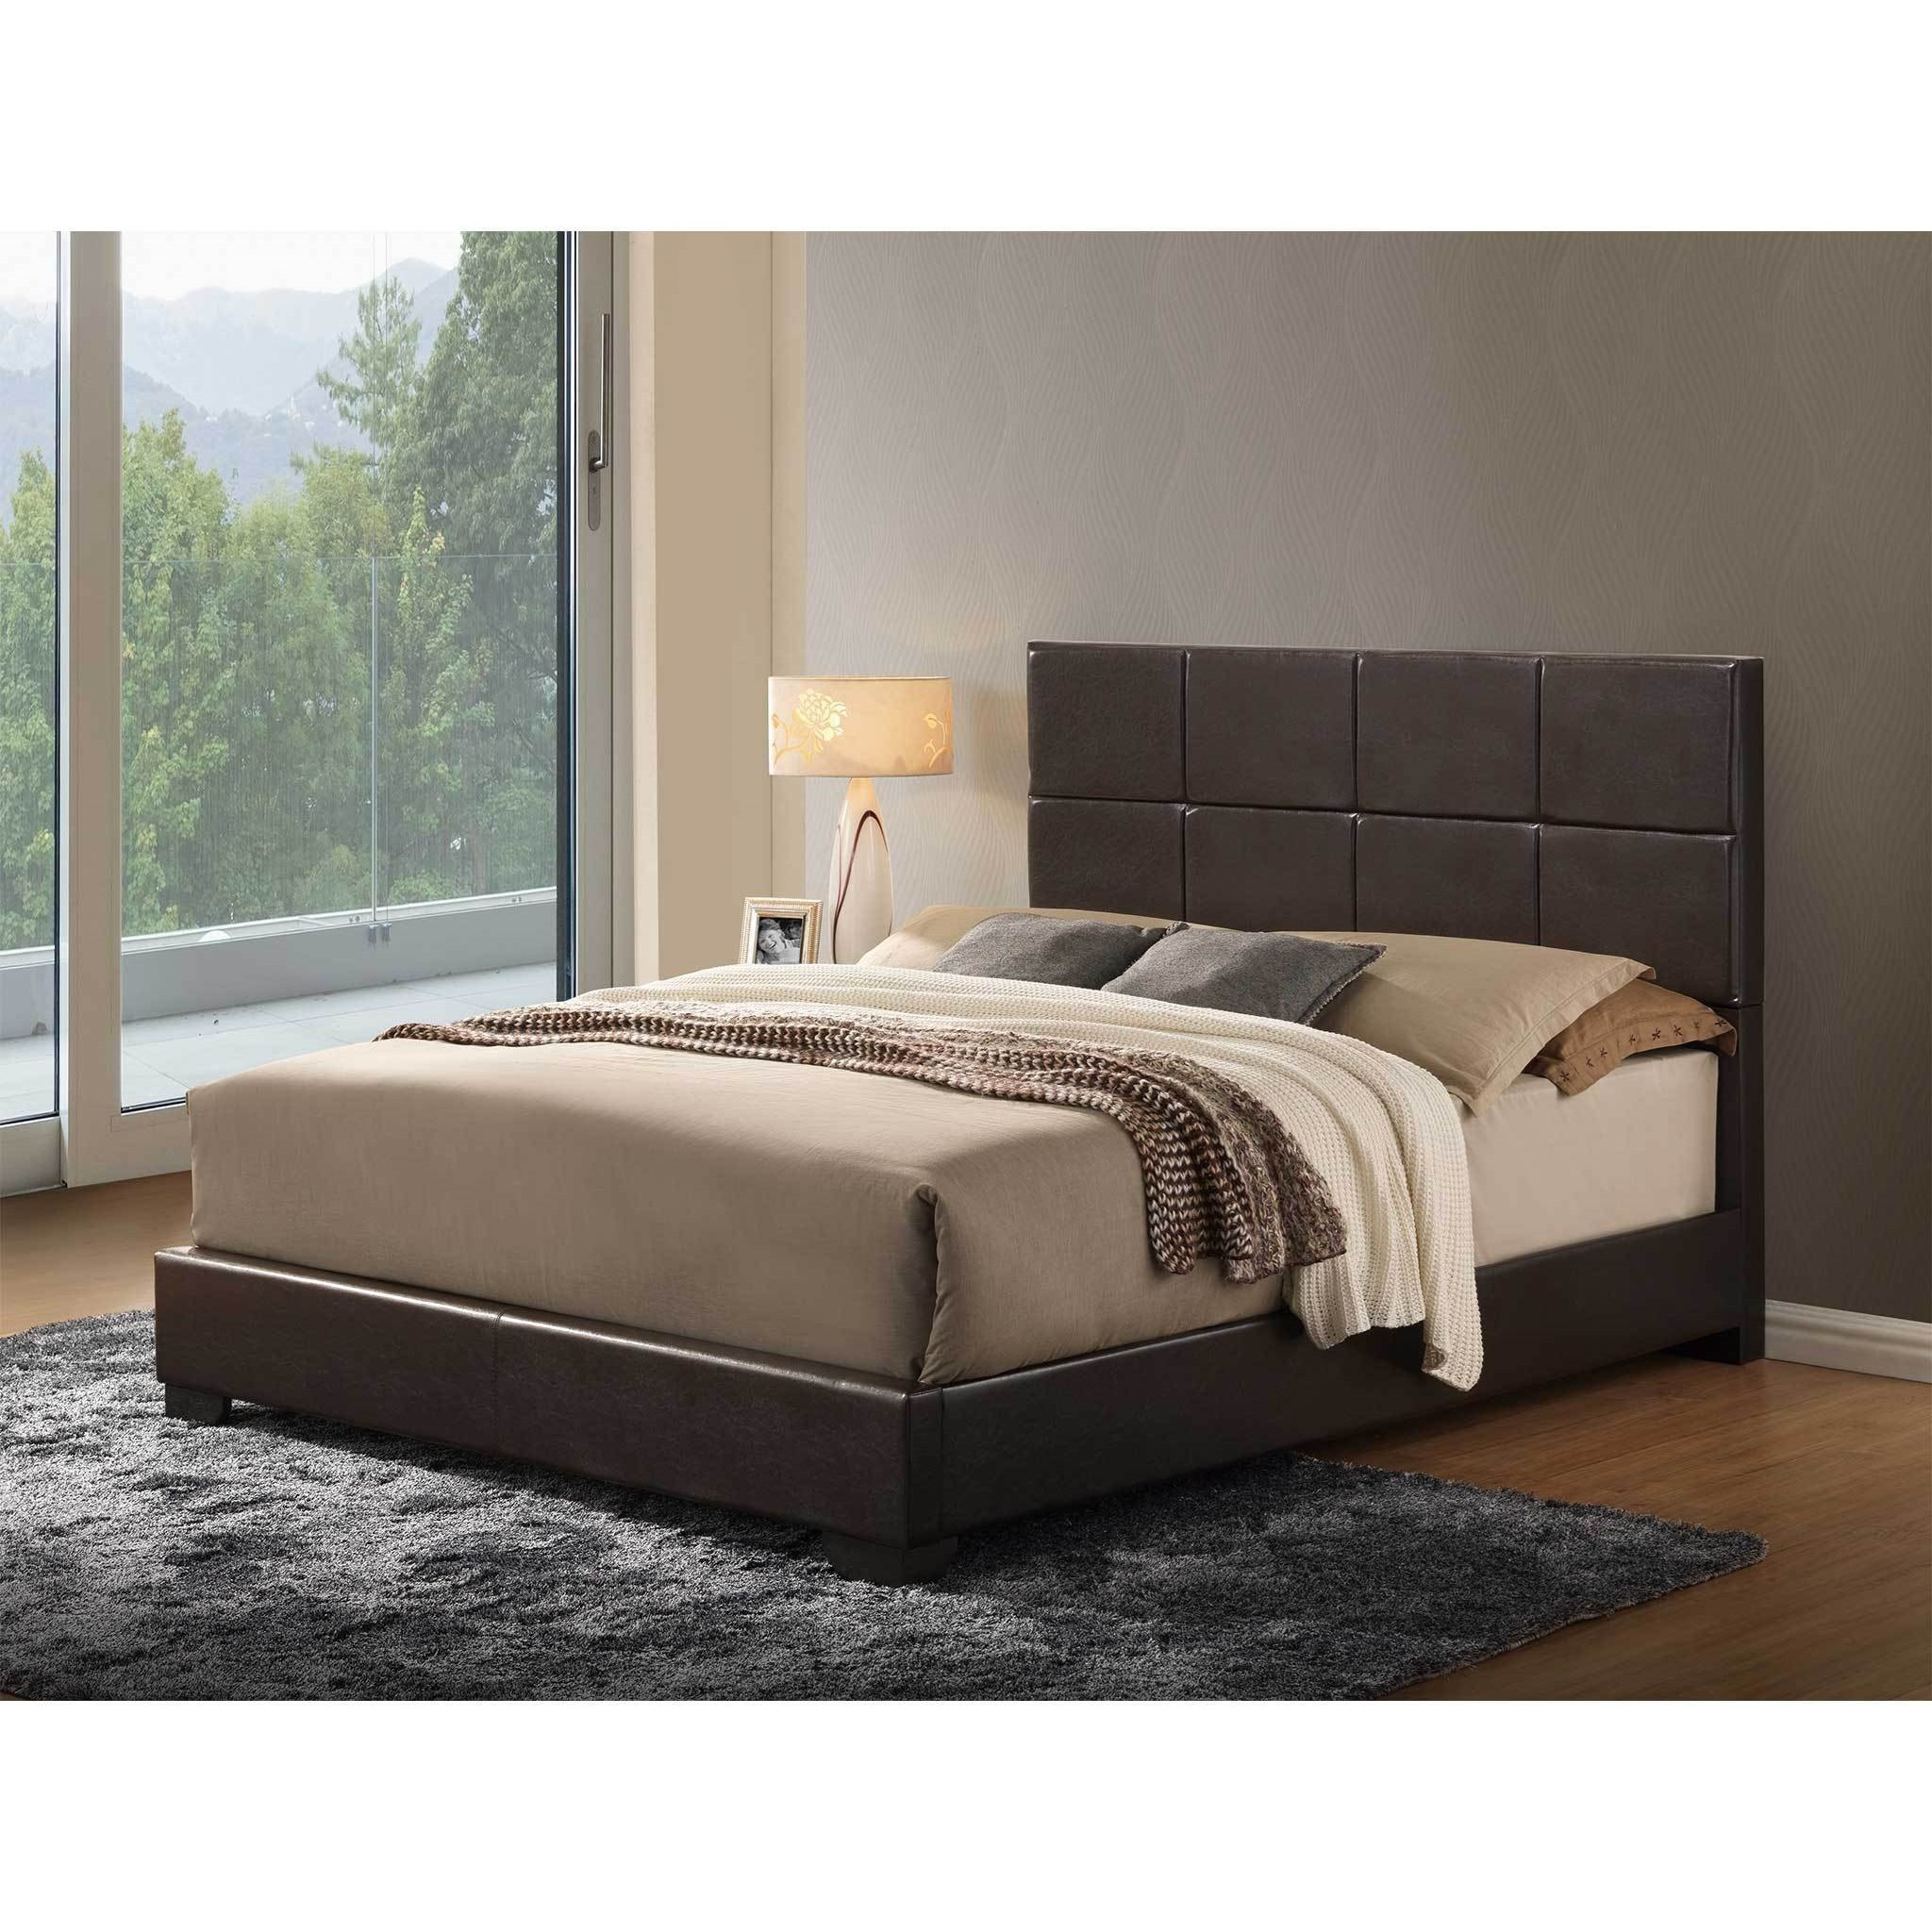 8566 Upholstered Twin Bed by Global Furniture at Nassau Furniture and Mattress